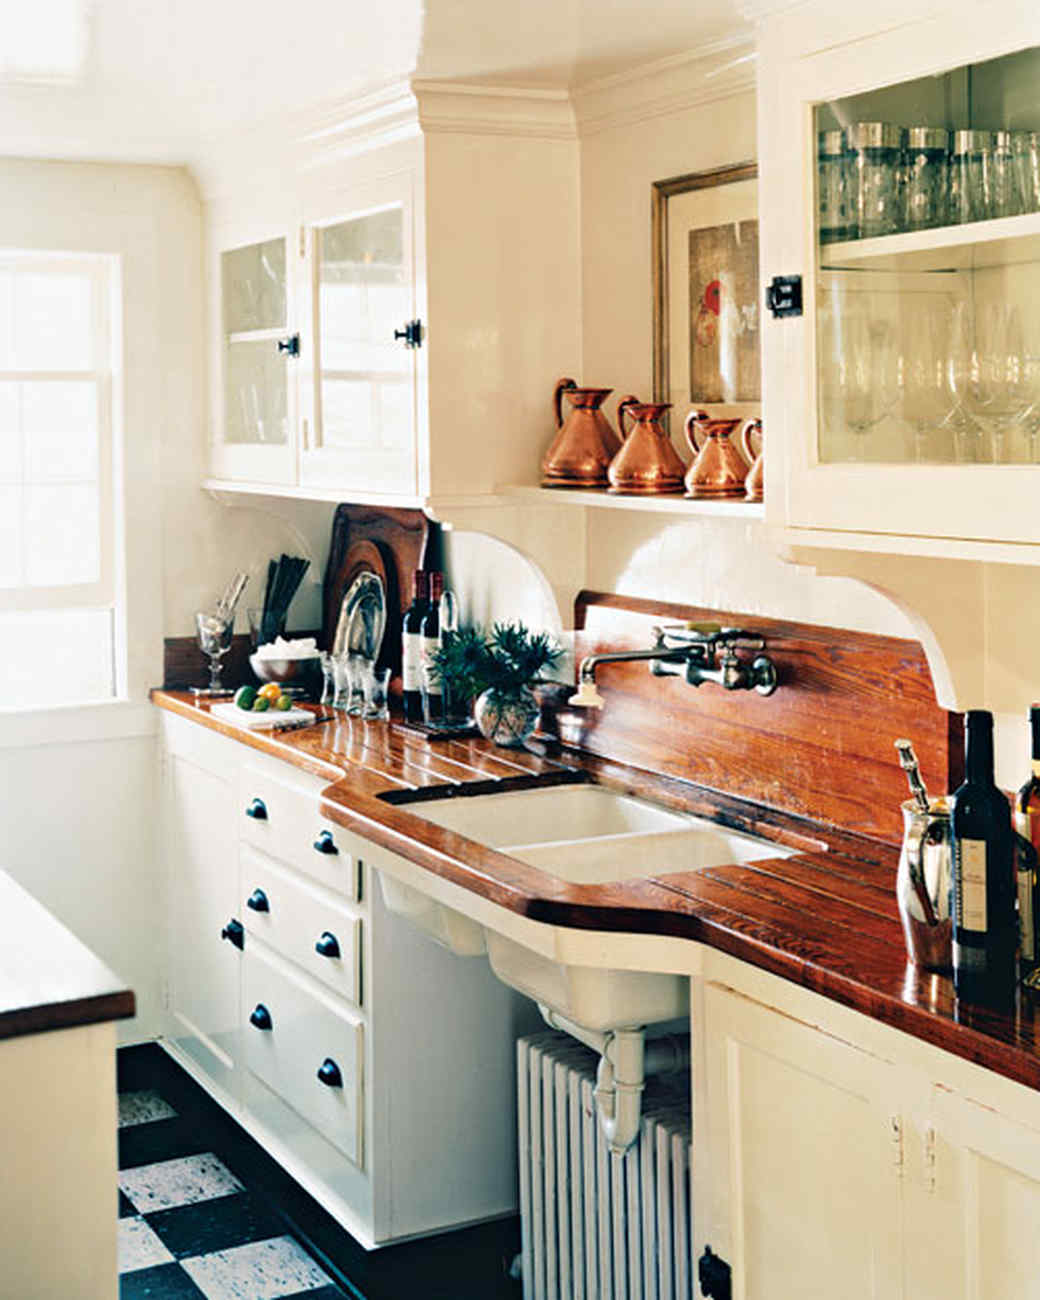 Rustic Yellow Kitchen: A Rustic Revelation: 8 Creative Country Kitchen Ideas